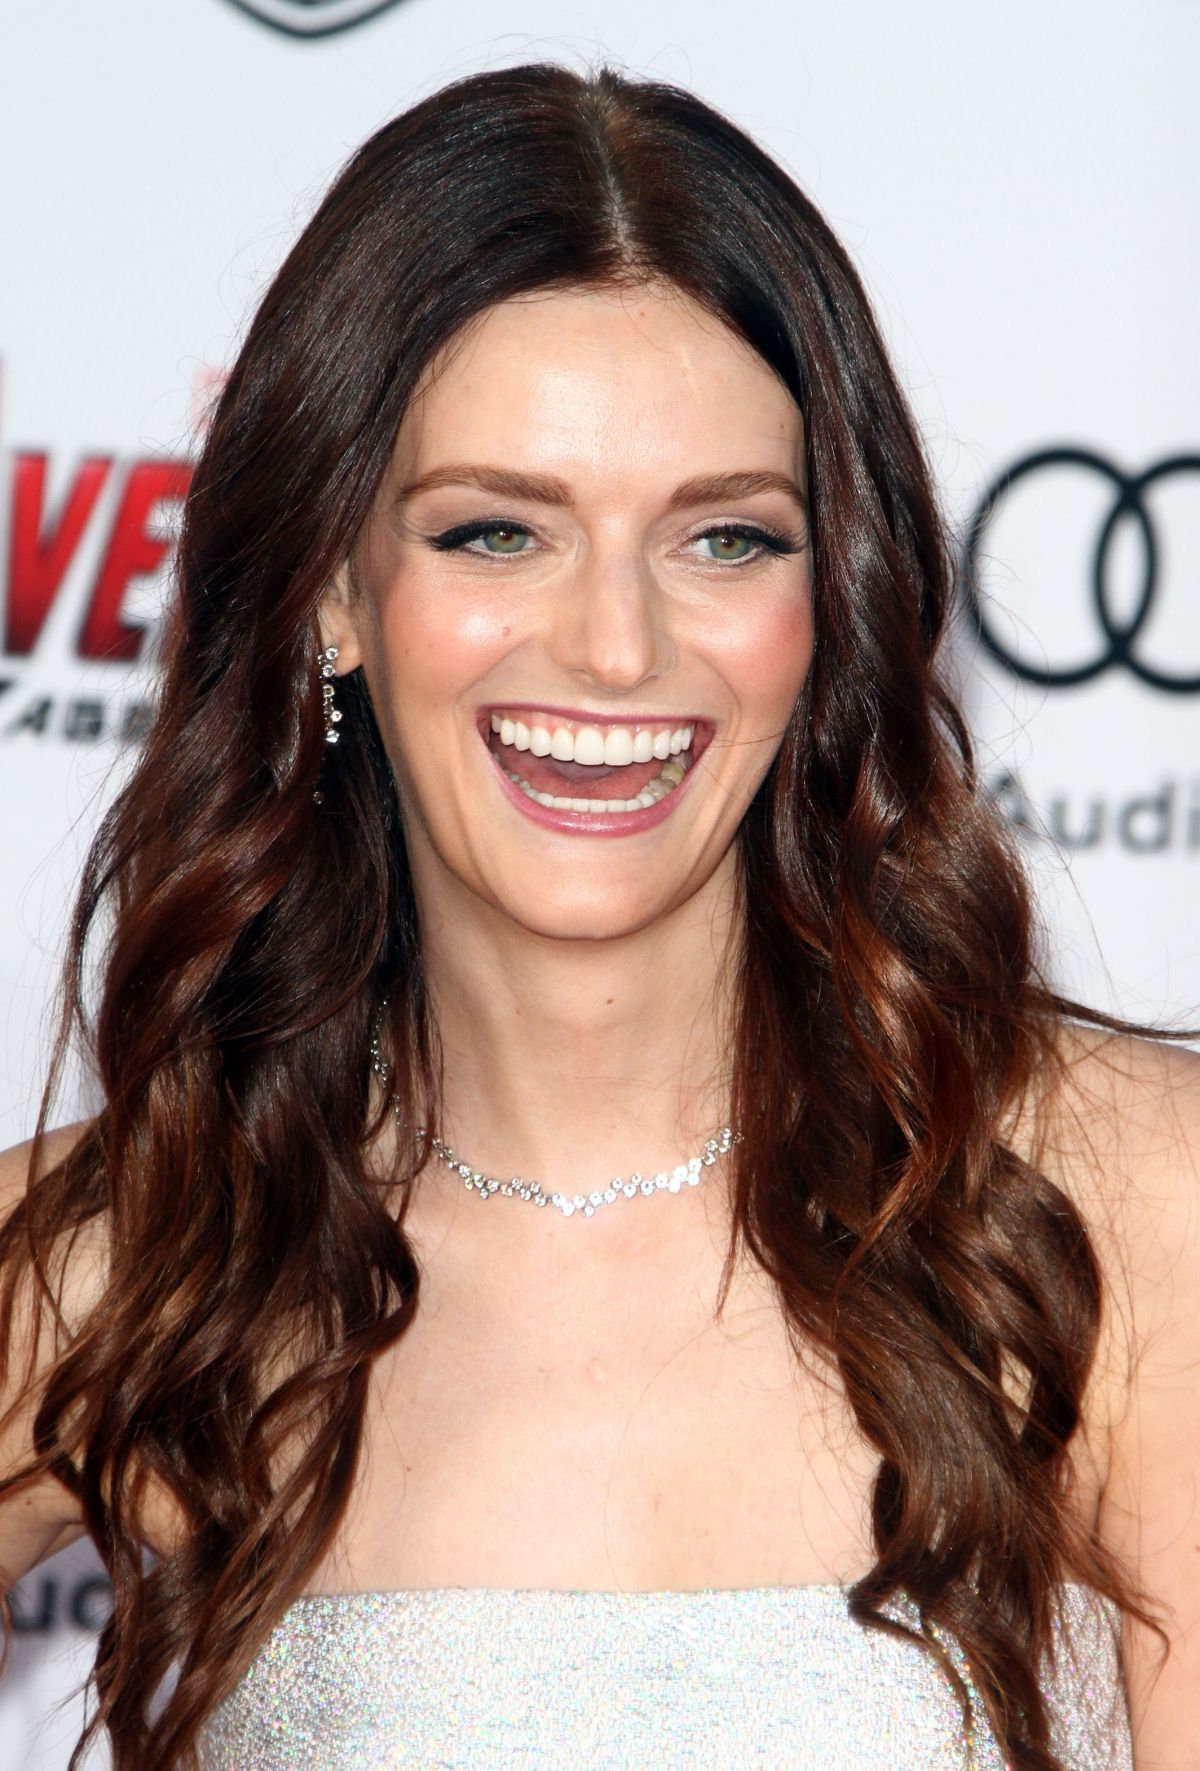 Lydia Hearst Avengers Age Ultron Premiere Hollywood Demi Lovato